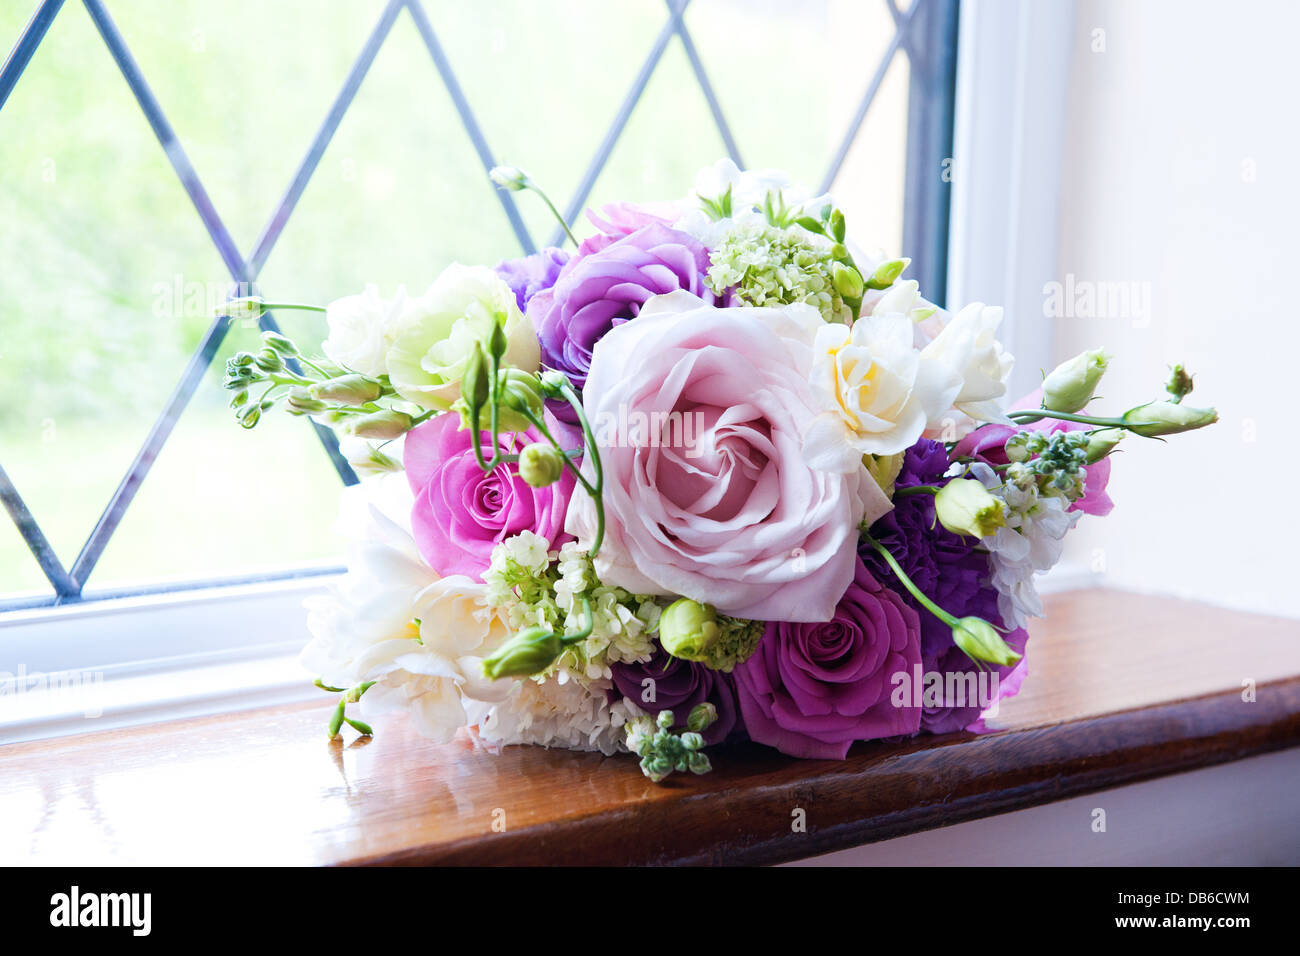 Vibrant Purple, Pink, White and Pastel Pink Rose Wedding Flower ...